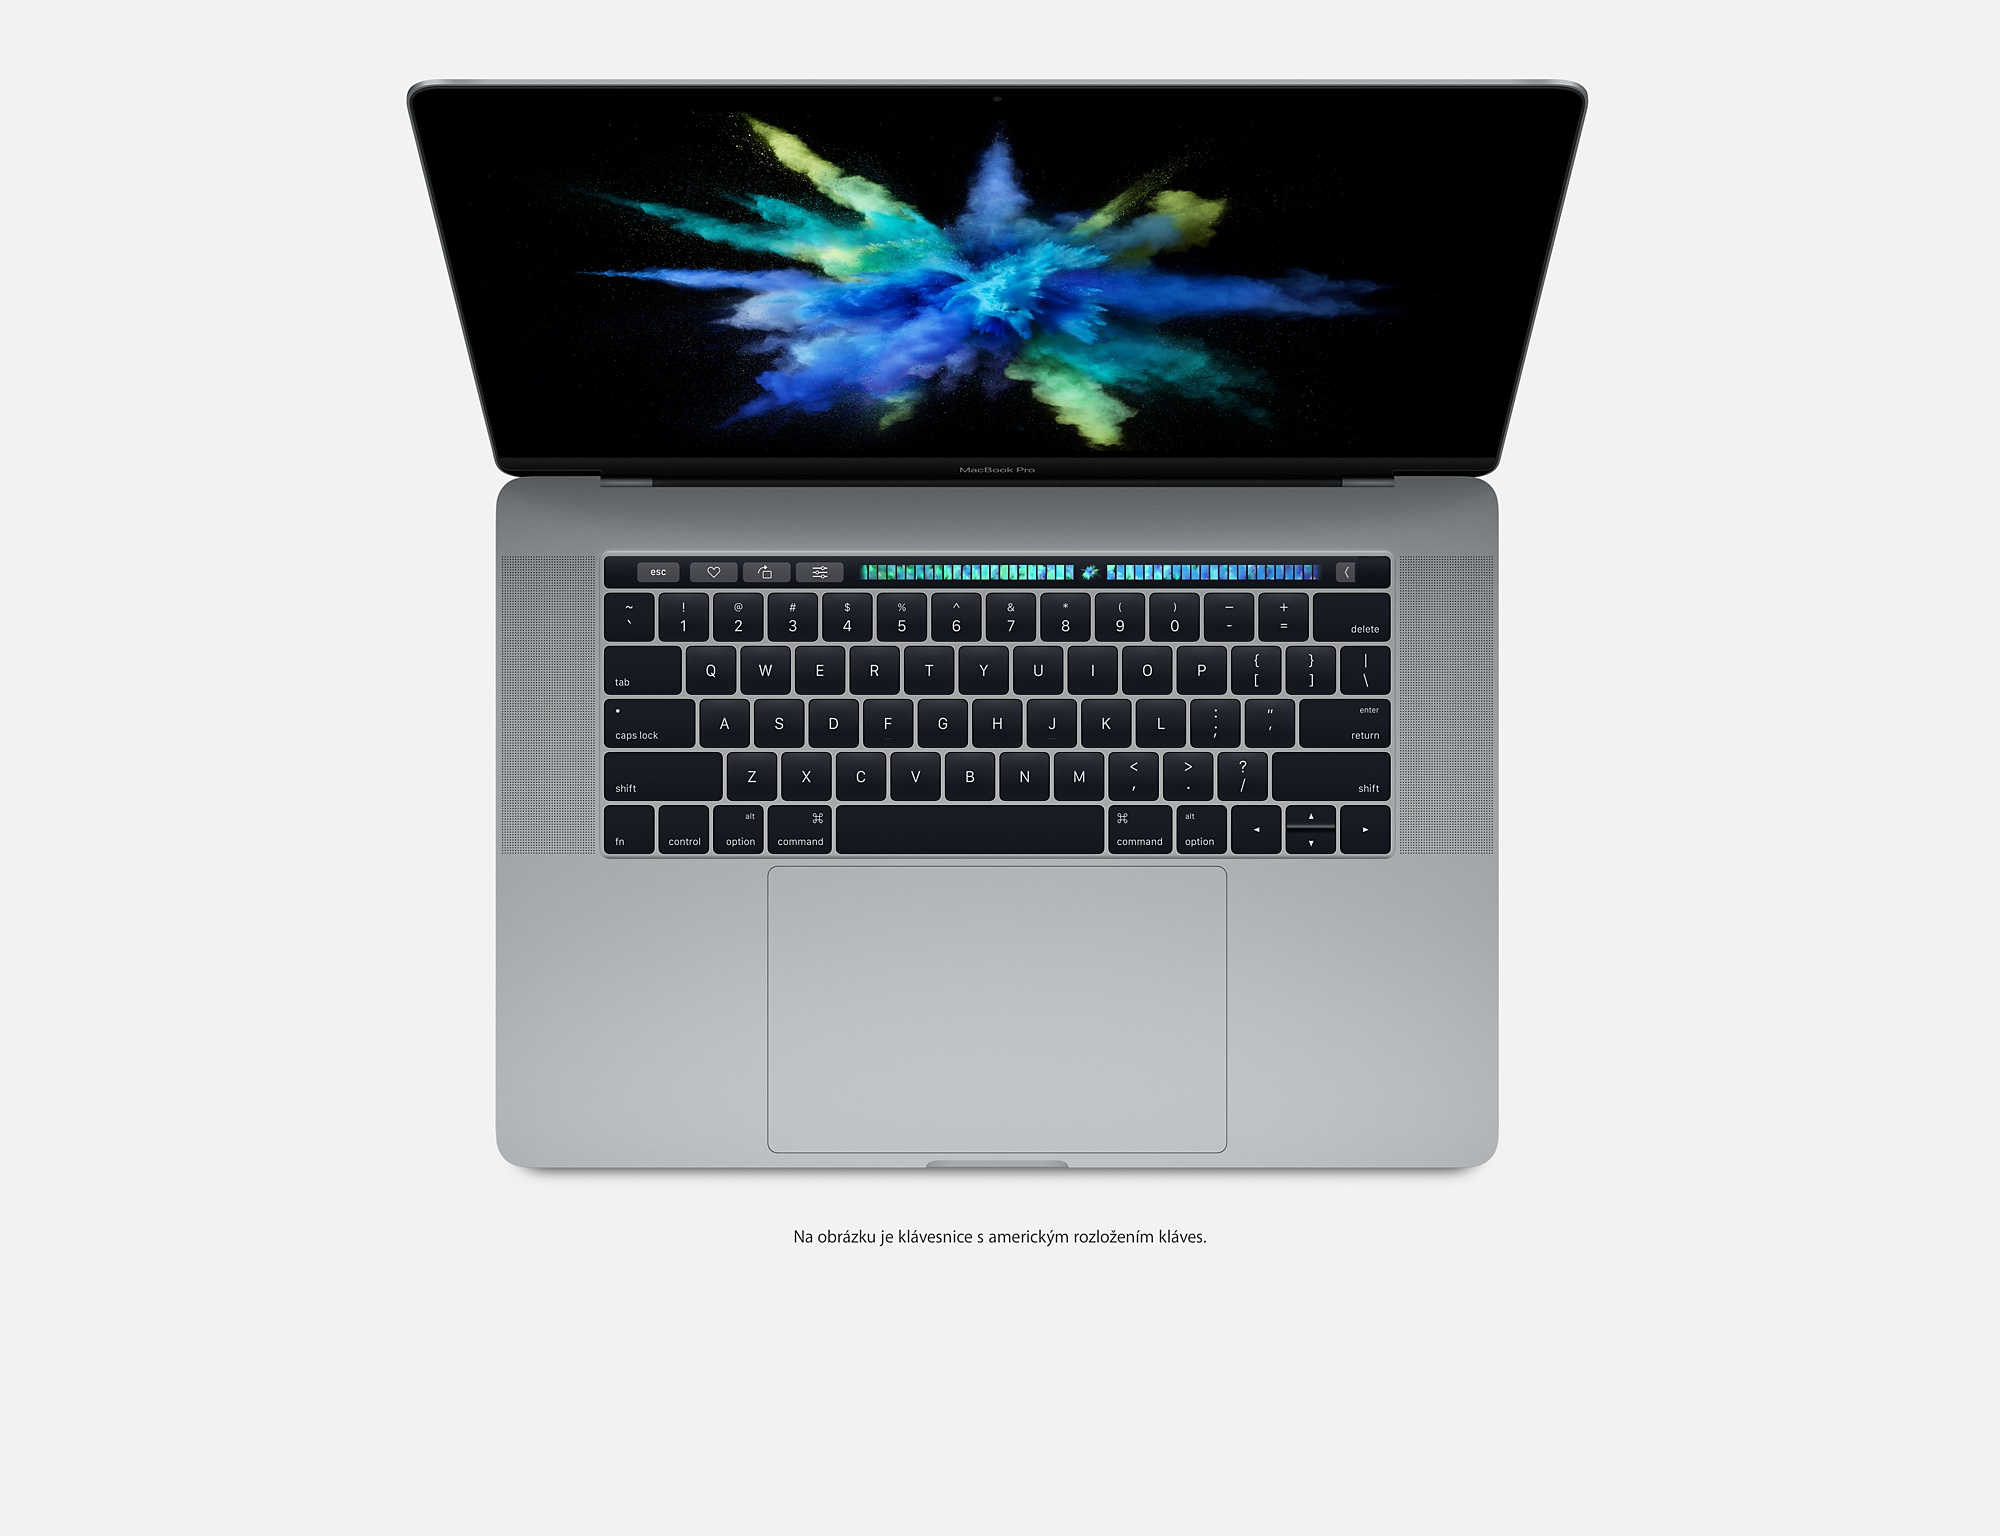 MacBook Pro 15'' i7 2.6GHz/16G/256/TB/SK/Sp Gray